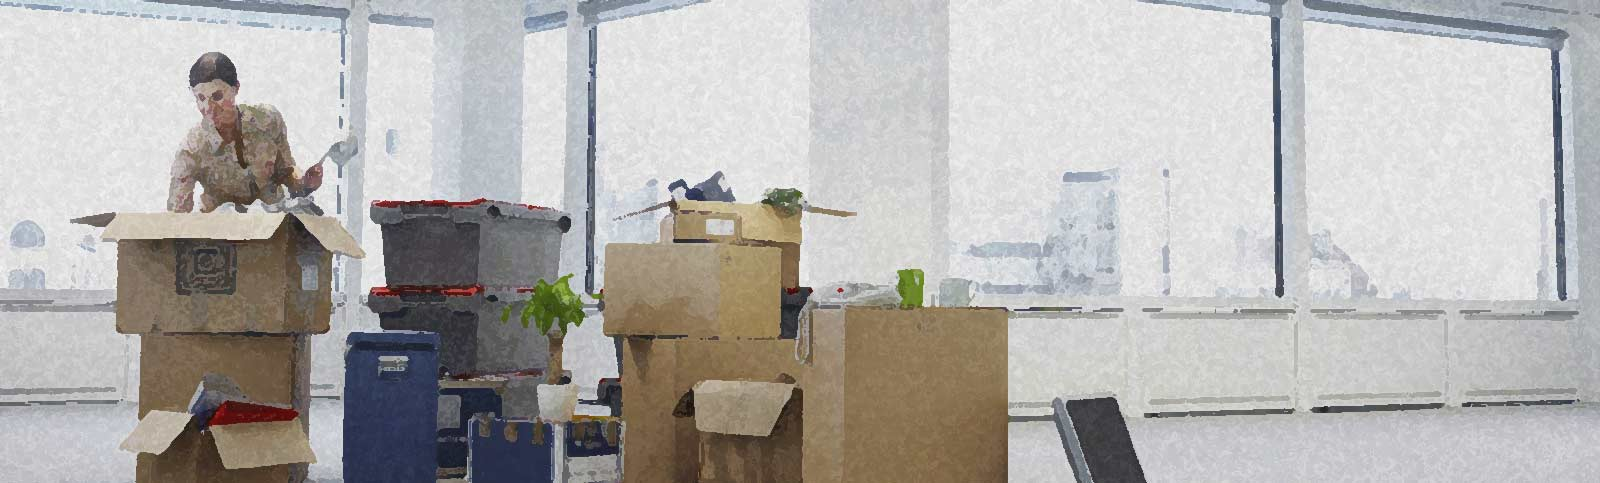 Some Things You Need to Consider Before Your Office Relocation